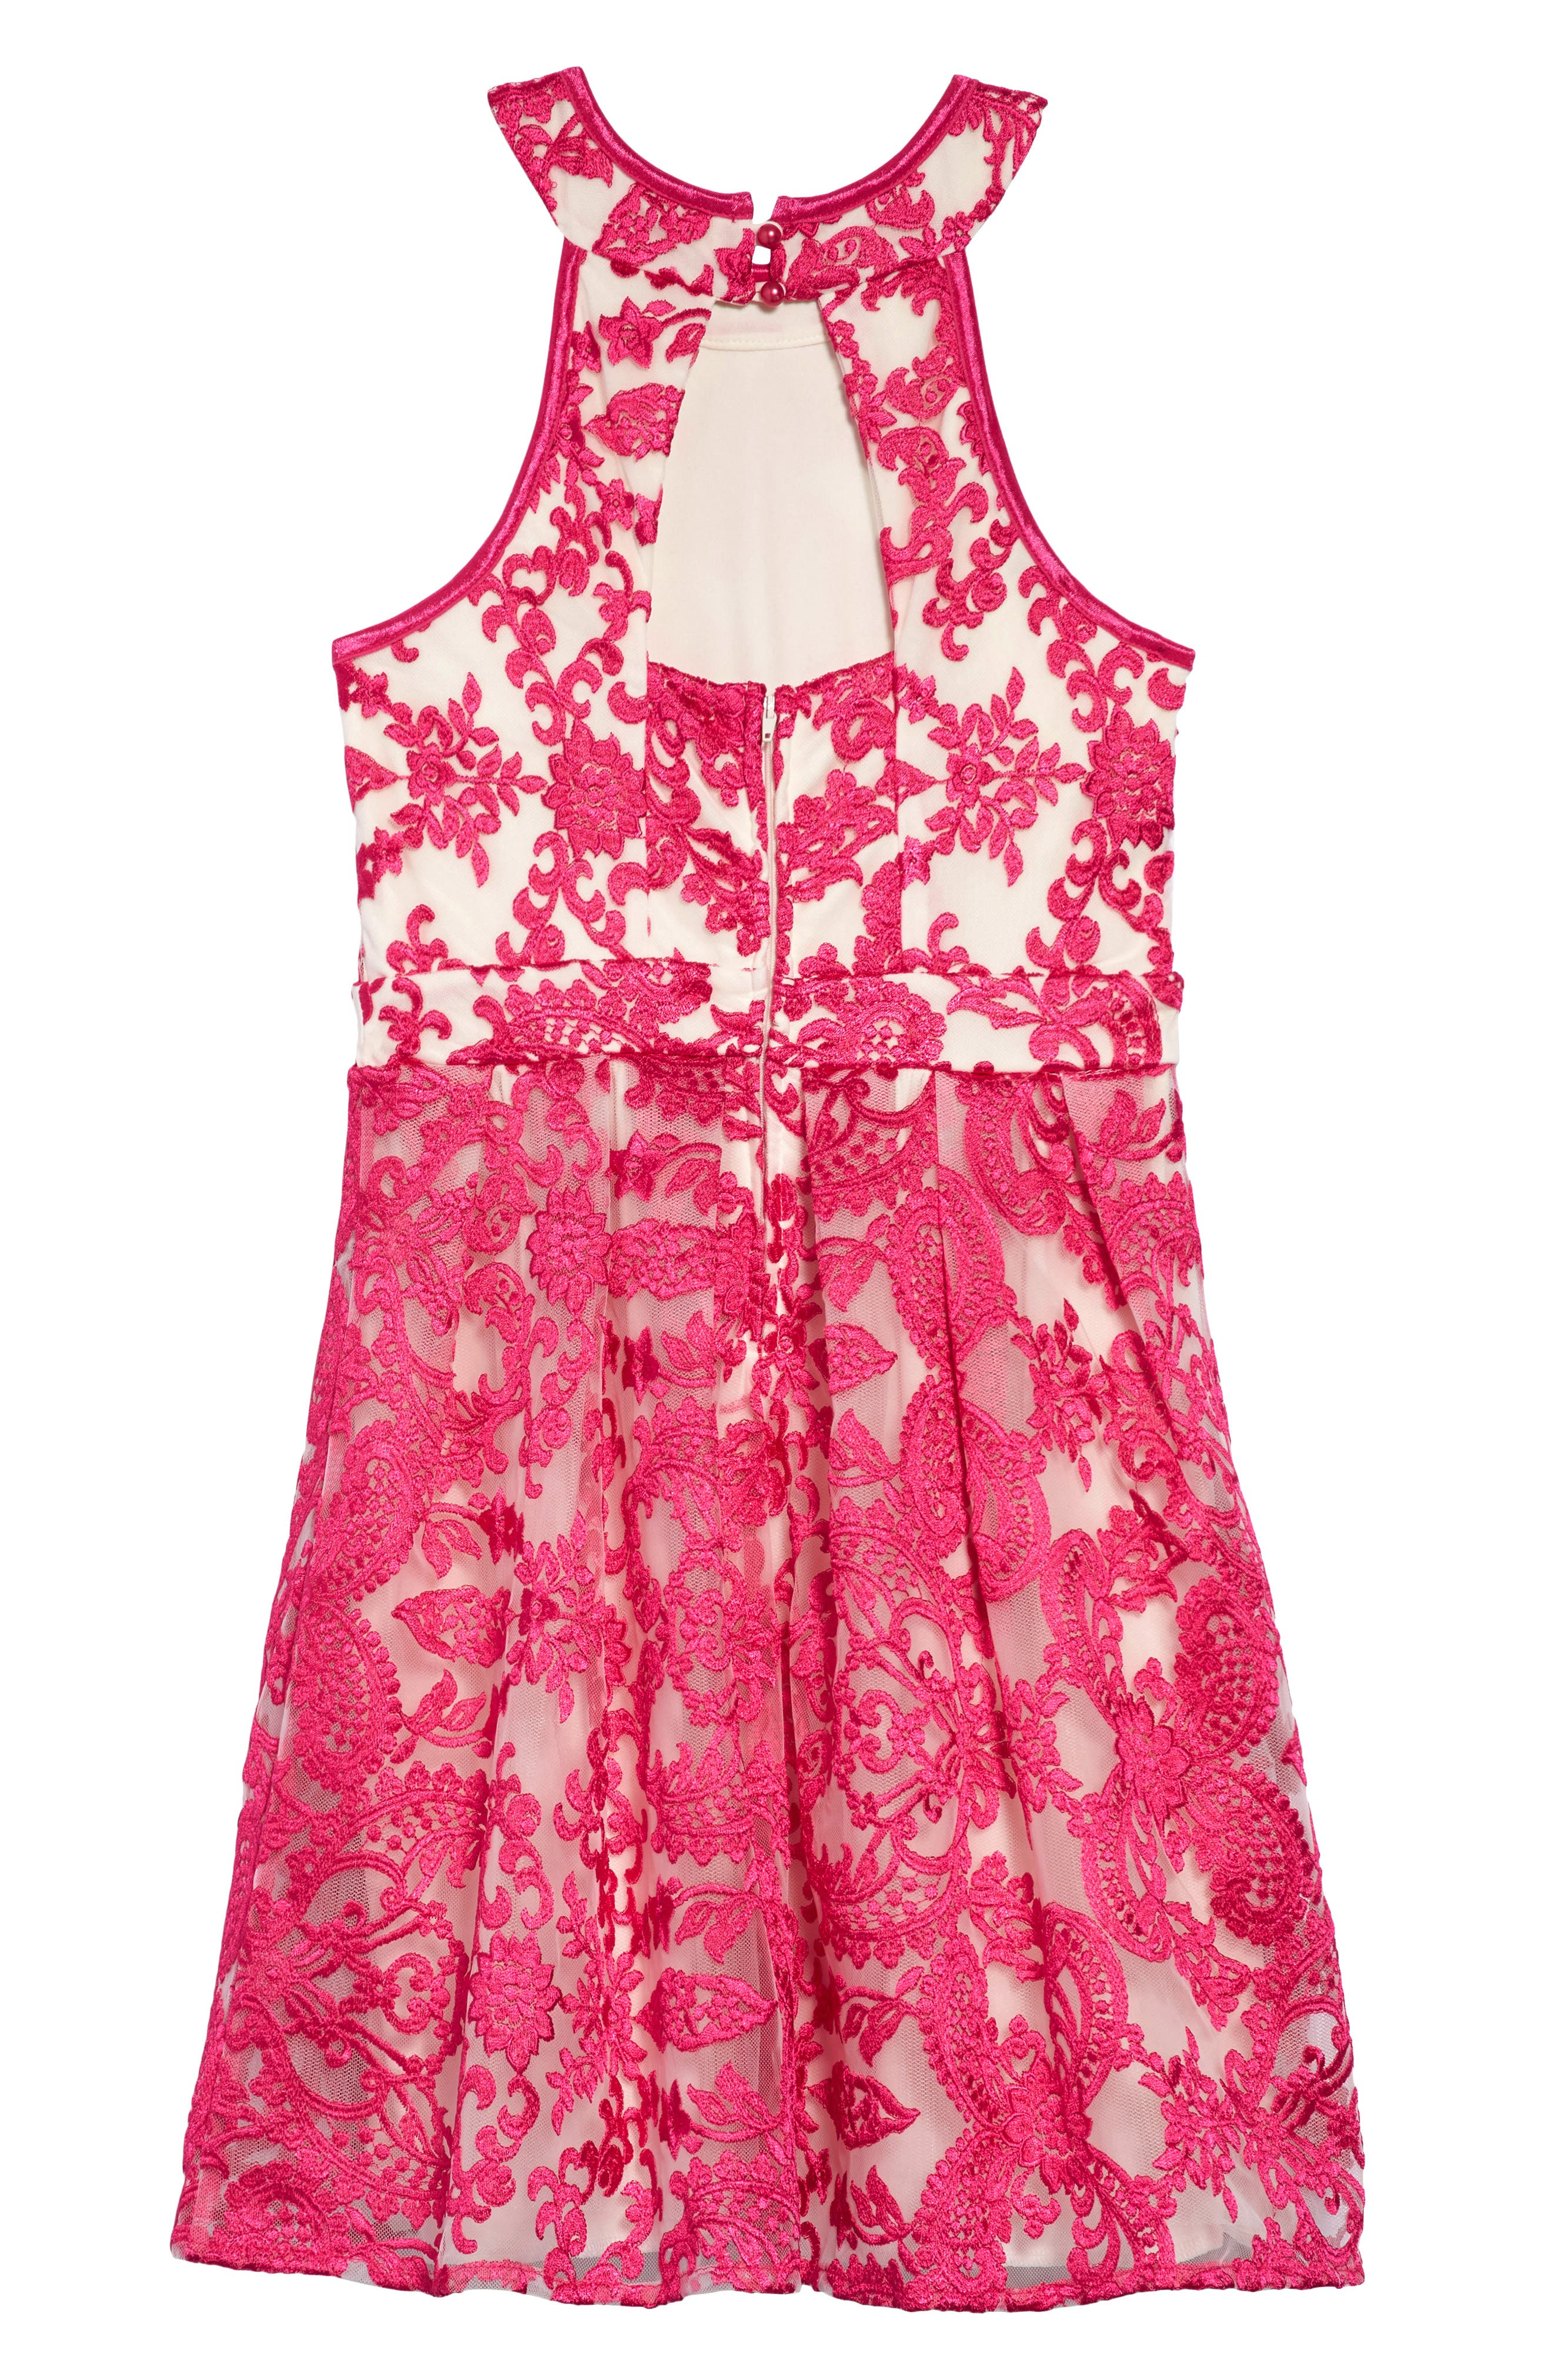 Floral Mesh Detail Dress,                             Alternate thumbnail 2, color,                             Fuchsia/ Nude